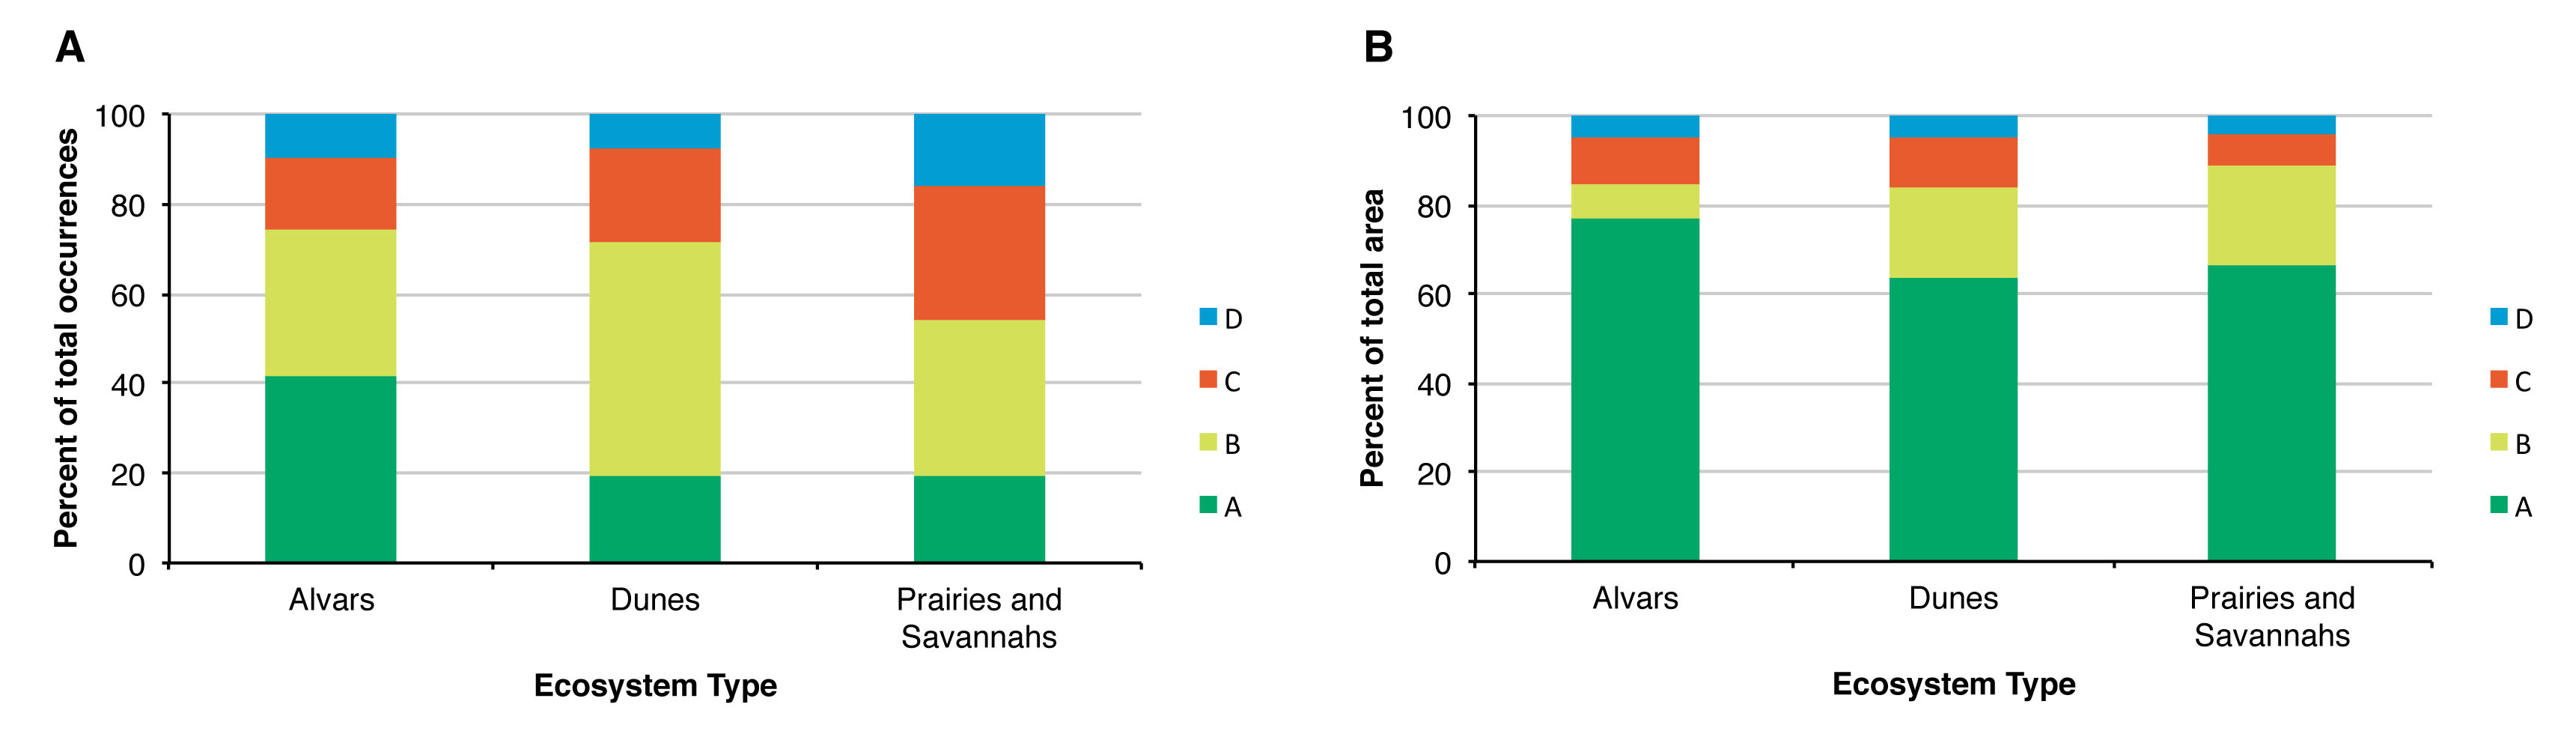 Figure 3. A) Proportion of vegetation community occurrences with quality ranks A-D in alvar, dune and prairie/savannah ecosystems; B) Proportion of area with quality ranks A-D in alvar, dune and prairie/savannah ecosystems (source: NHIC database, OMNRF, Peterborough, ON).